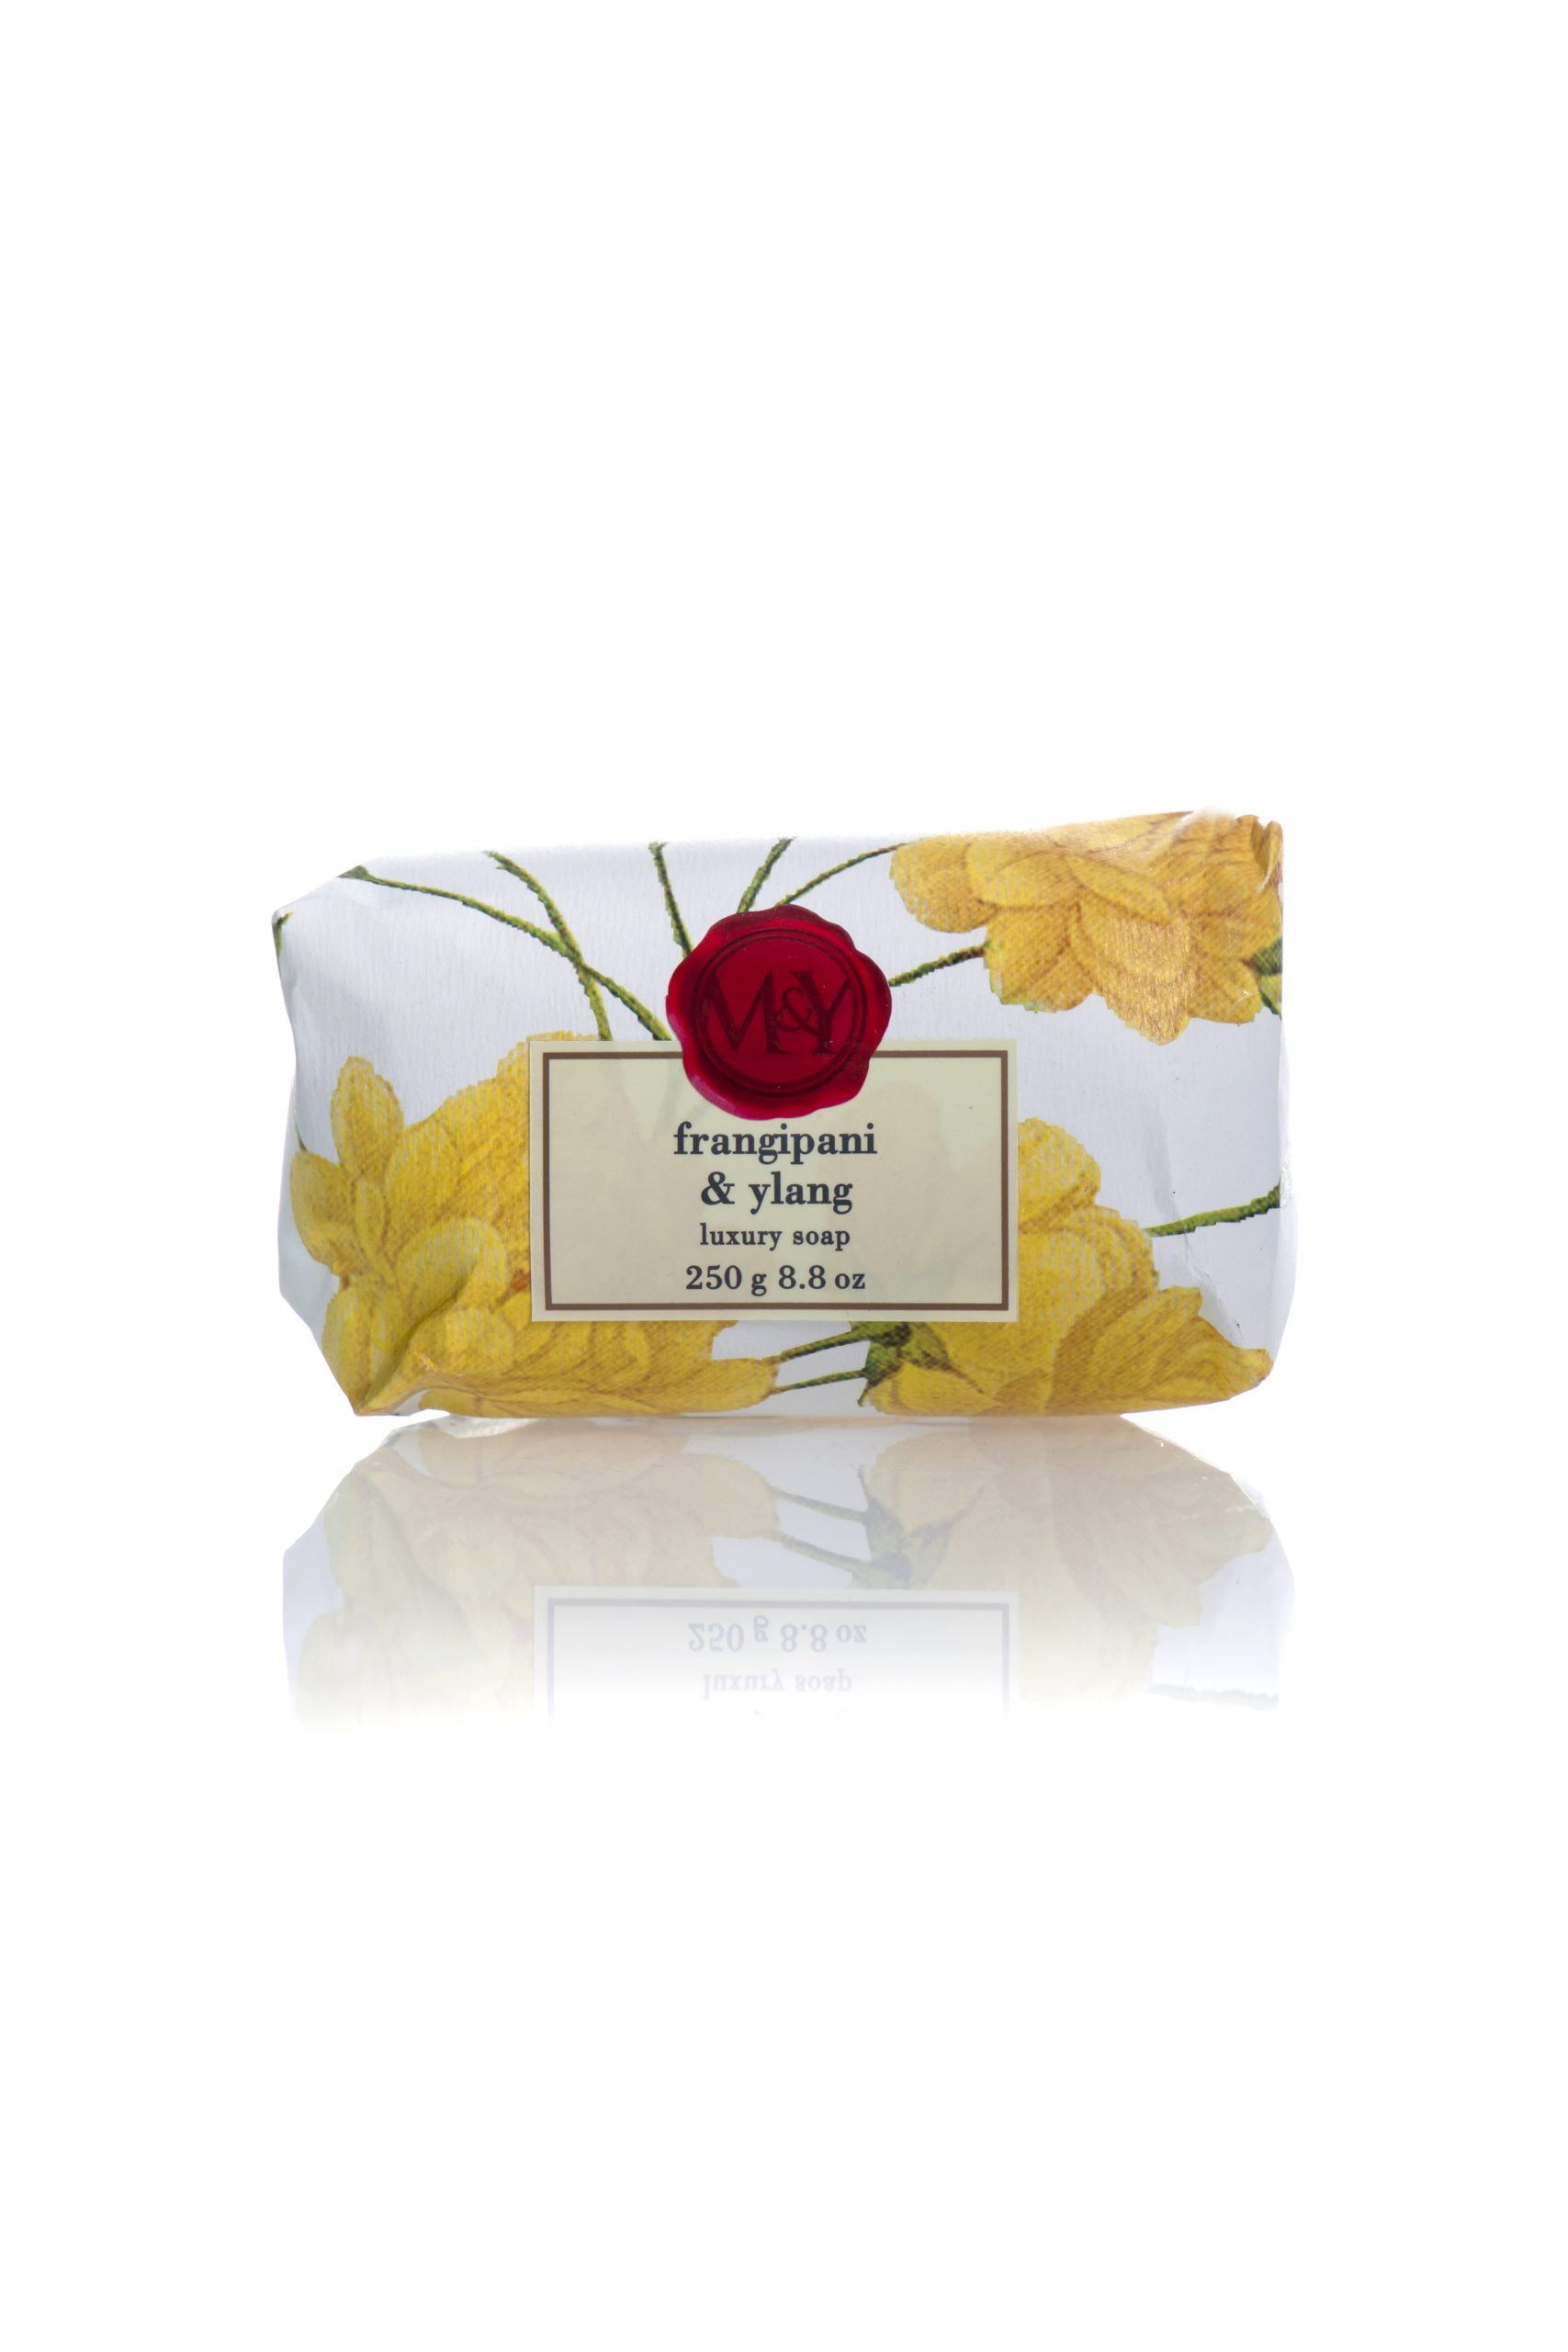 MY-Frangipani-Ylang-250g-Luxury-Soap-scaled-1.jpg